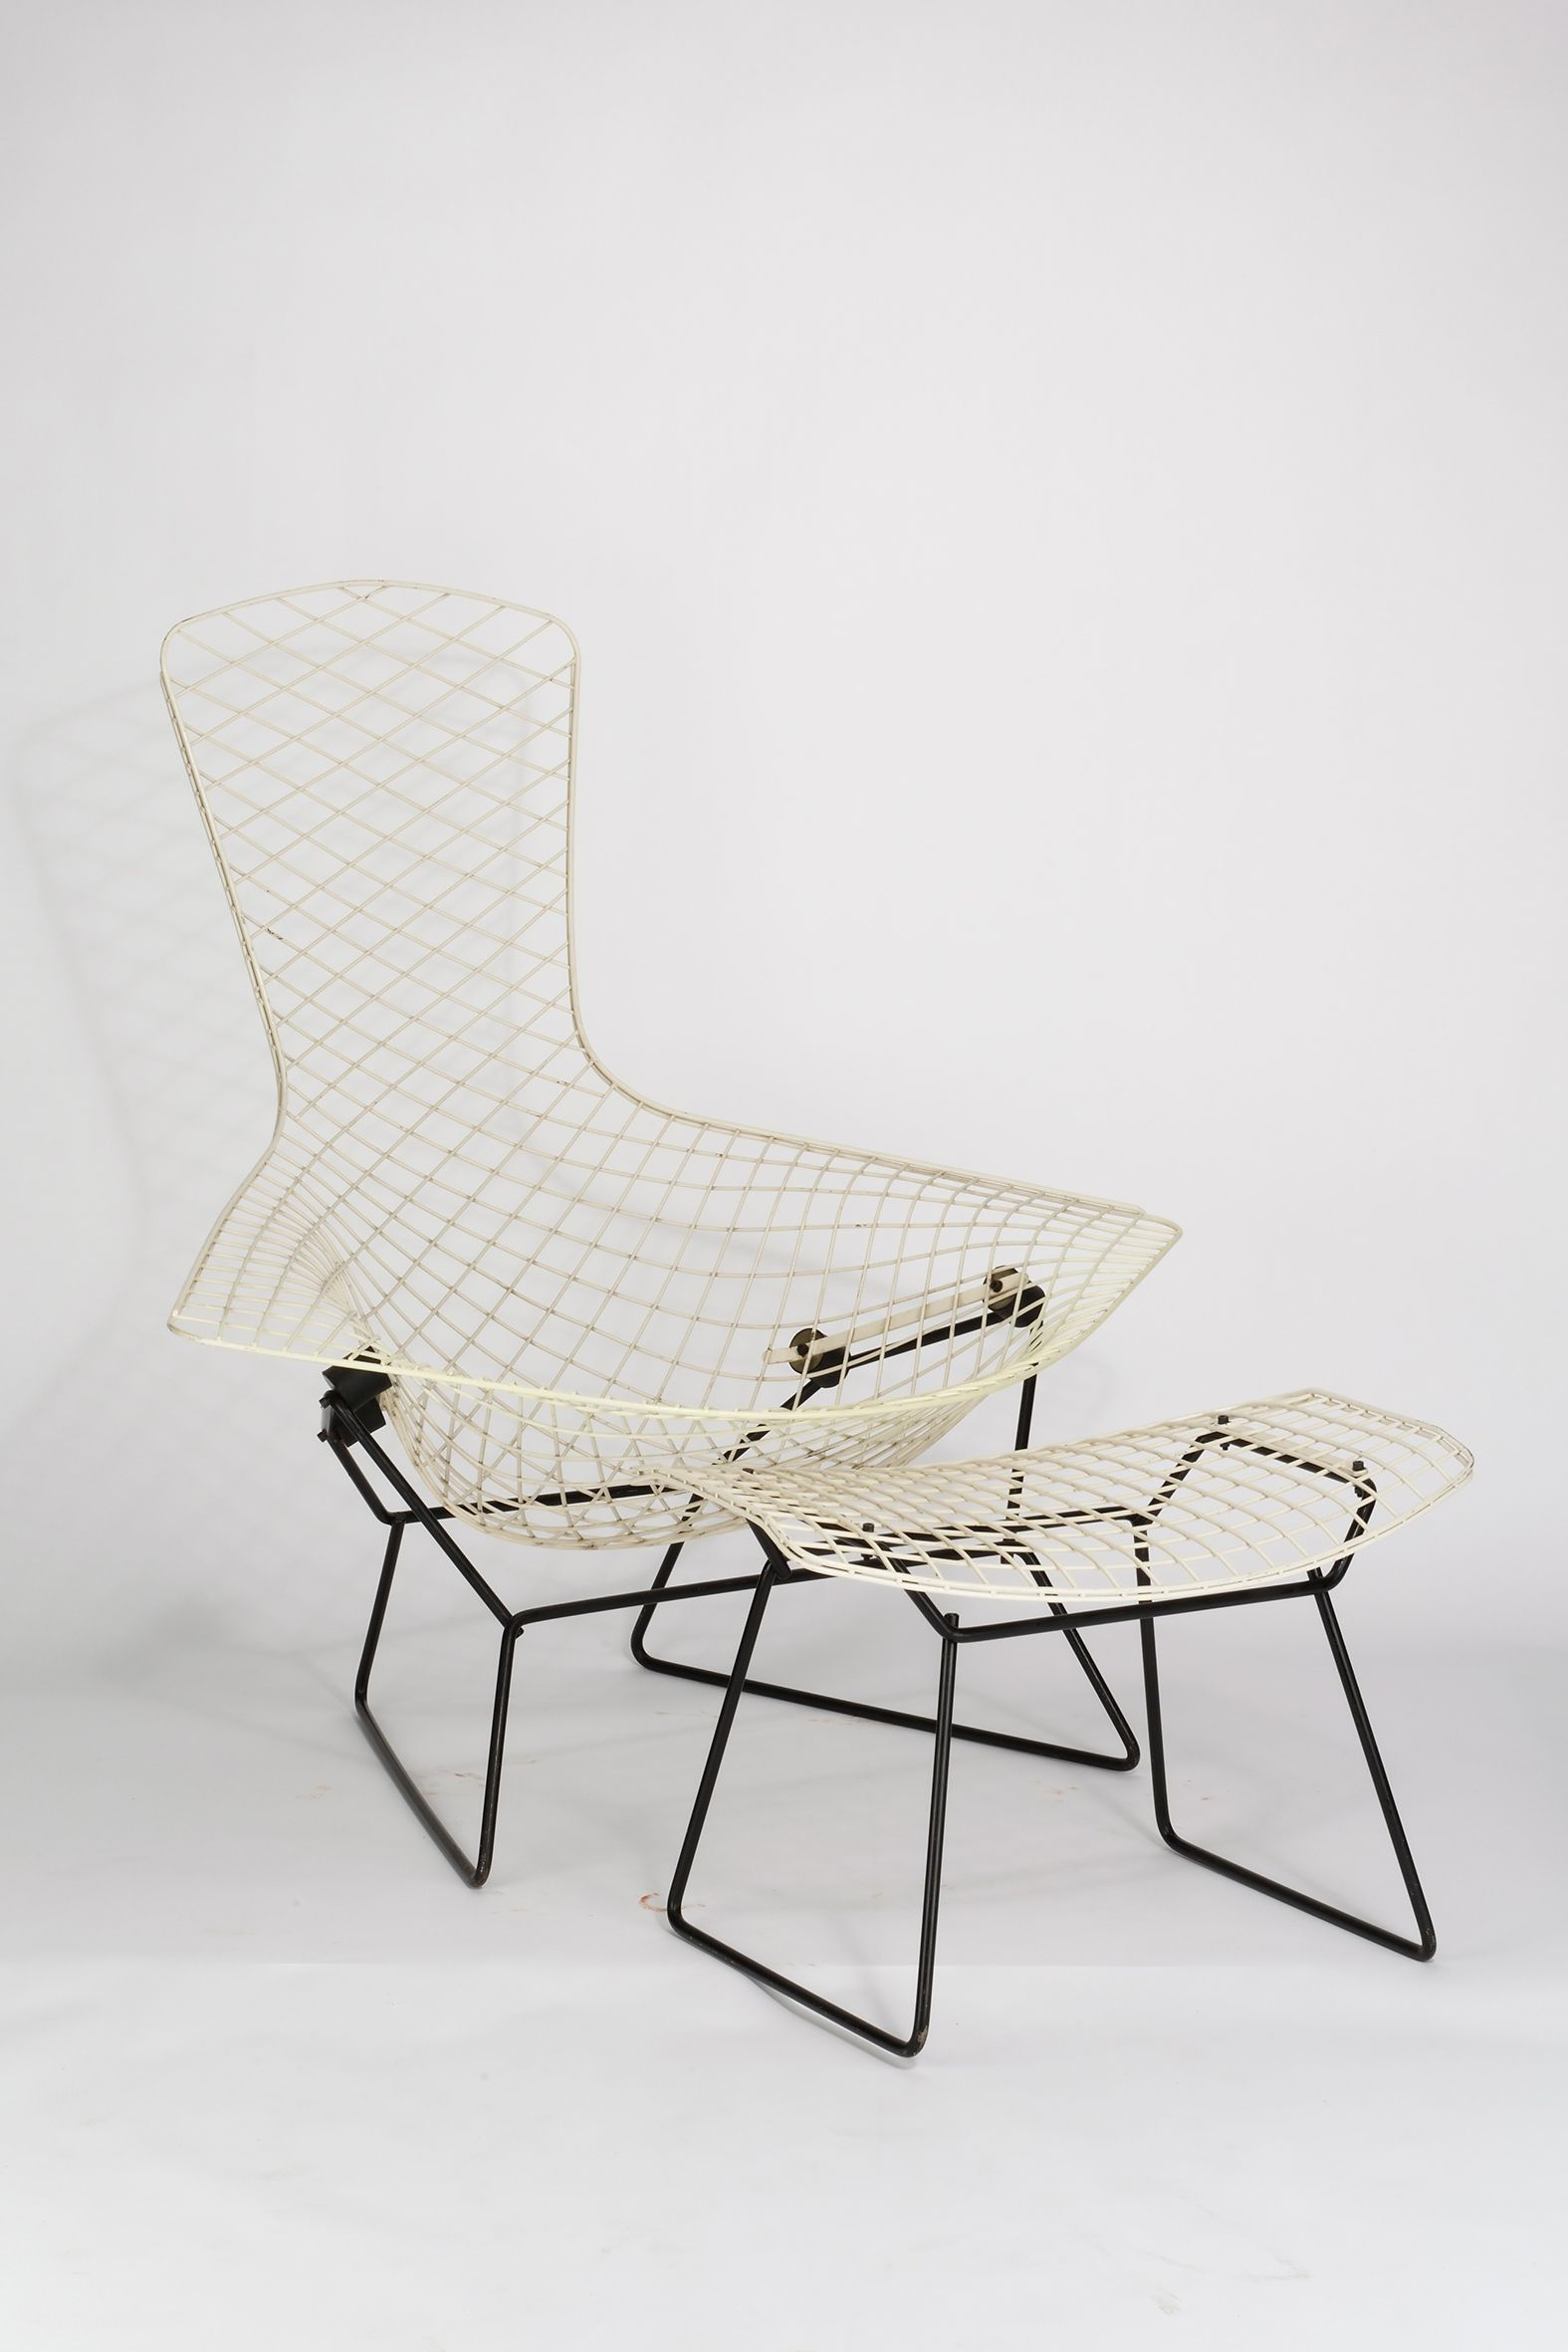 Harry bertoia bird chair modell nr 423 lu 1950 1952 for Stuhl designgeschichte